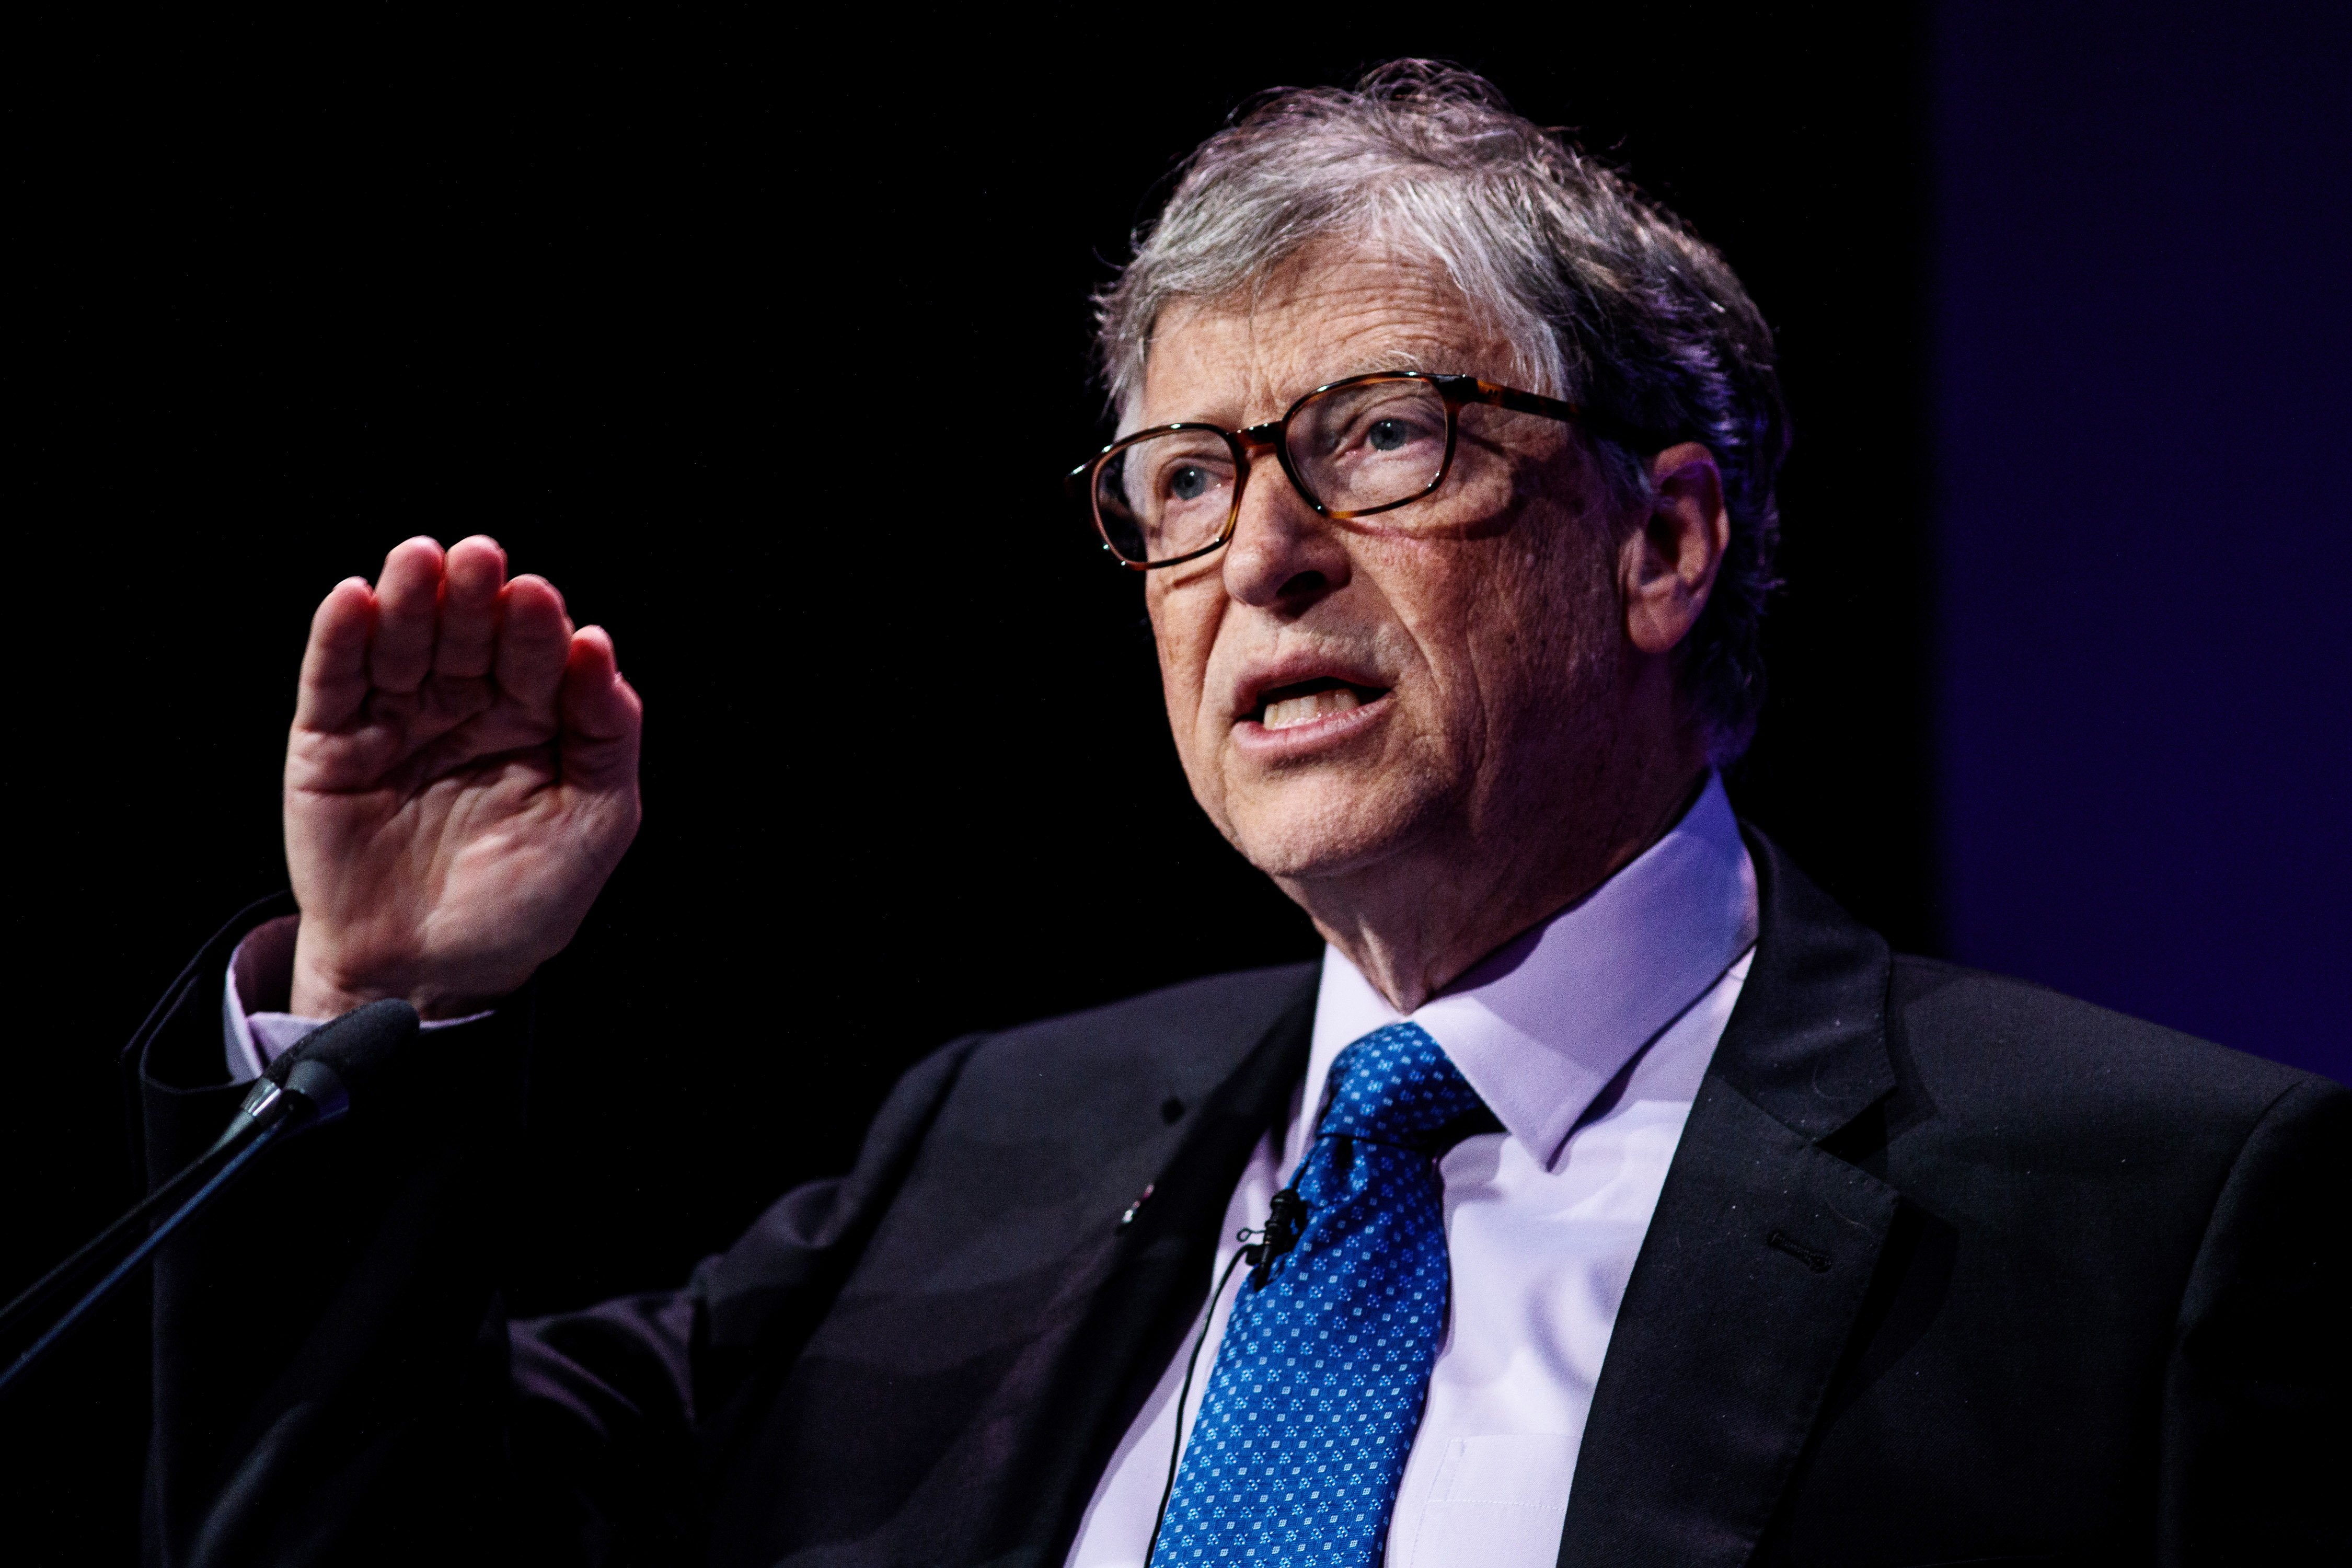 Bill Gates makes a speech at the Malaria Summit on April 18, 2018, in London, England. | Source: Getty Images.